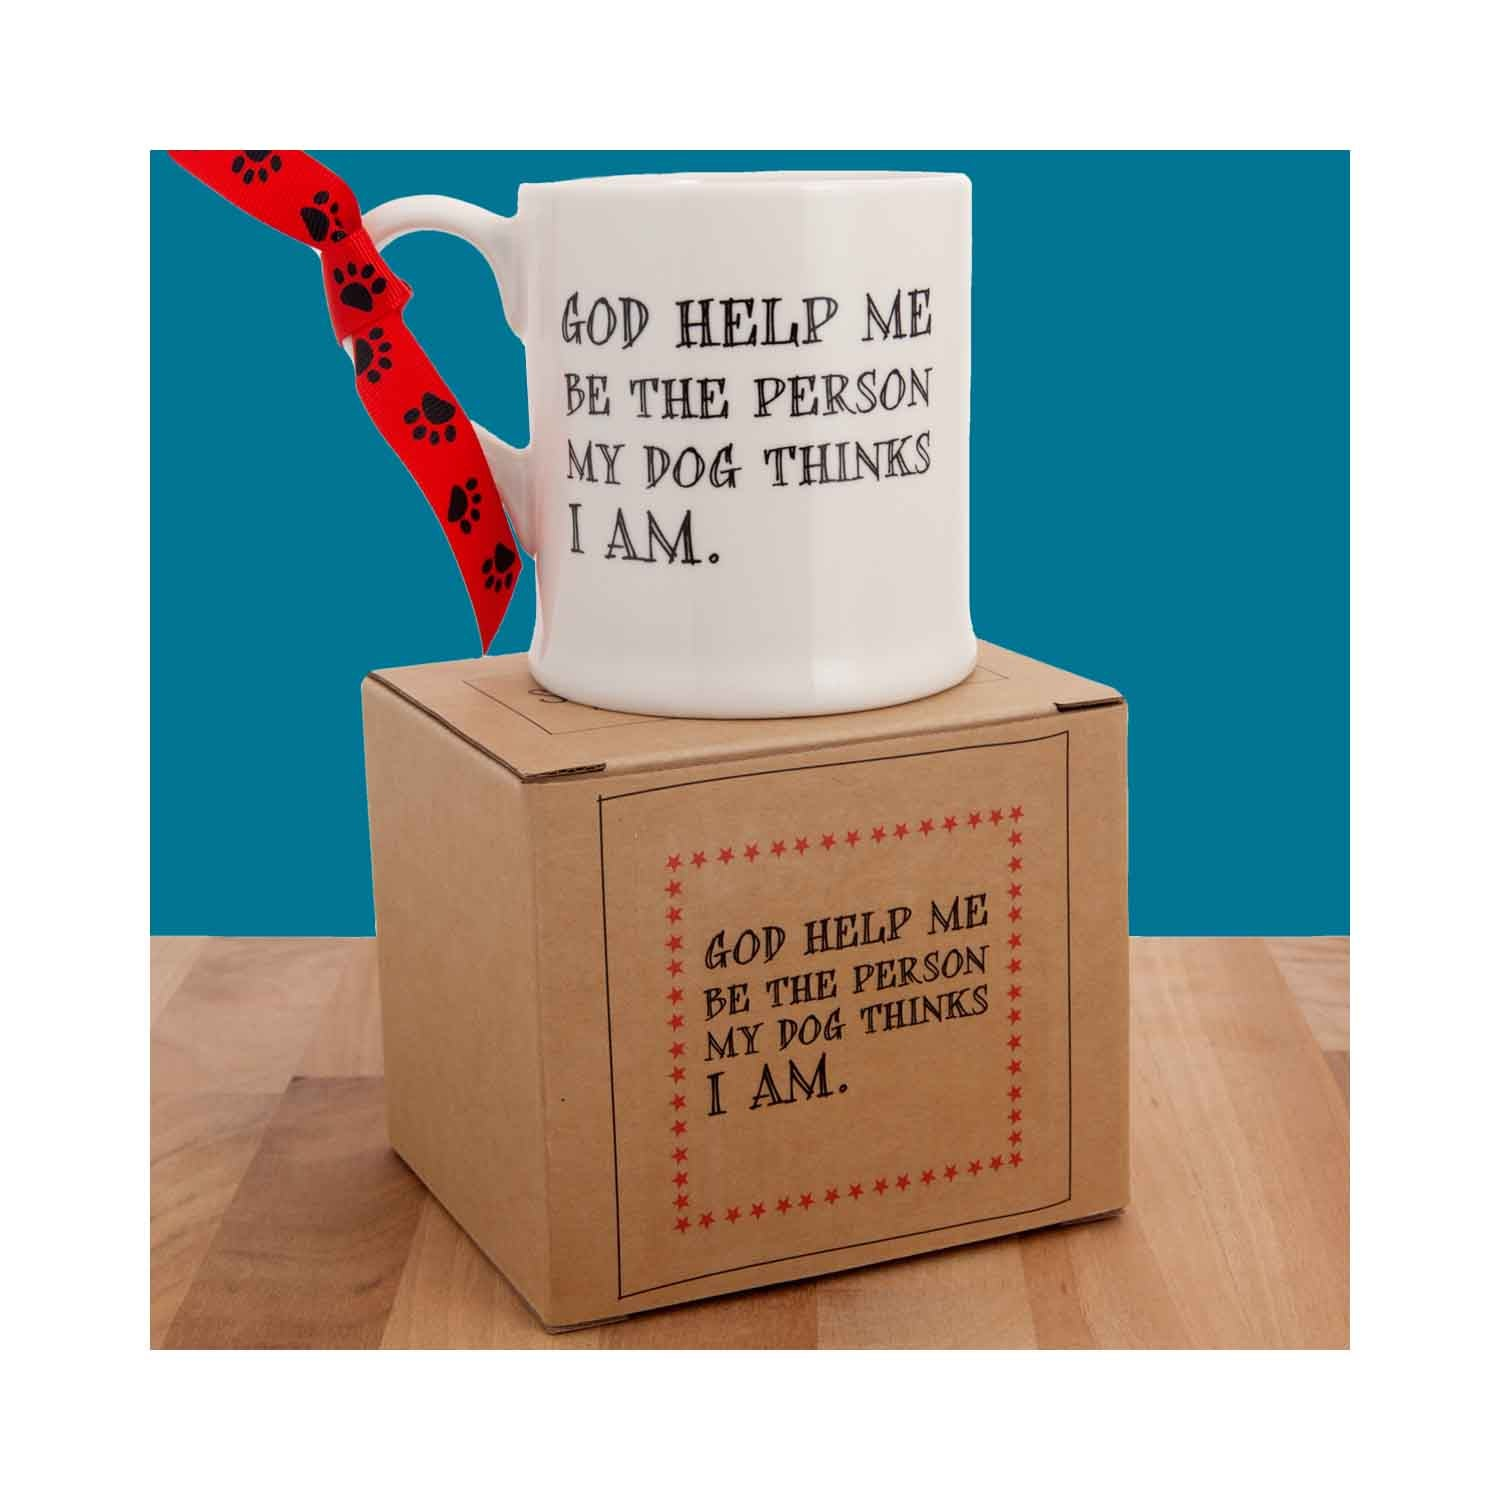 Dog Krazy Gifts - God Help Me Be The Person My Dog Thinks I Am Mug part of the Sweet William range available from DogKrazyGifts.co.uk